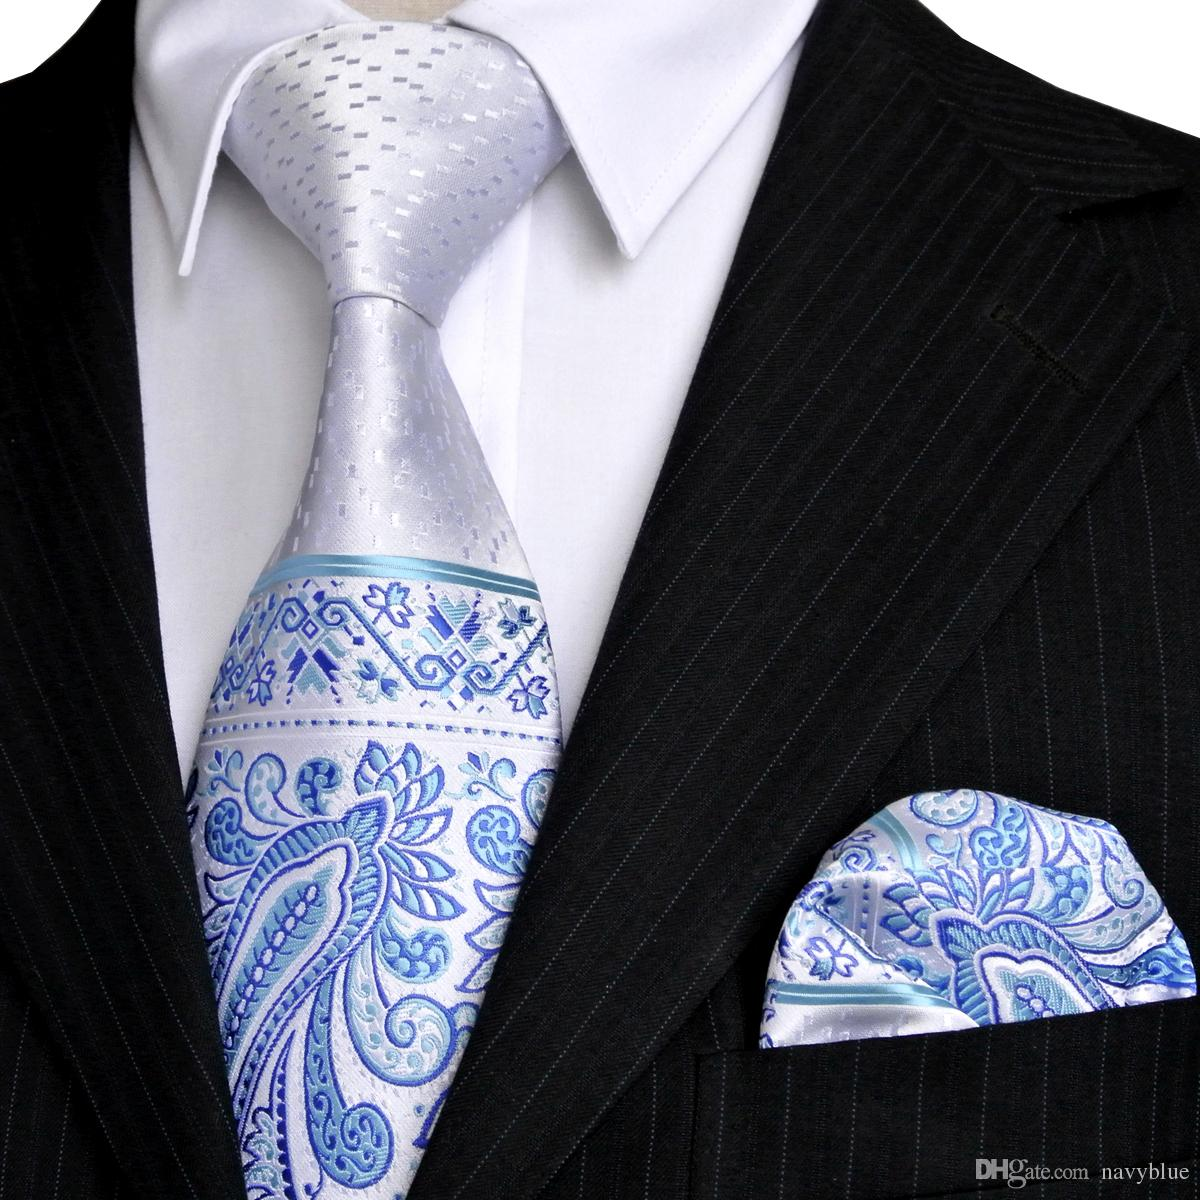 1deee3a4fe9 E5 Paisley Floral Dots White Silver Navy Blue Azure Mens Tie Set Neckties  Pocket Square 100% Silk Extra Long Ties Cream Blouse From Navyblue